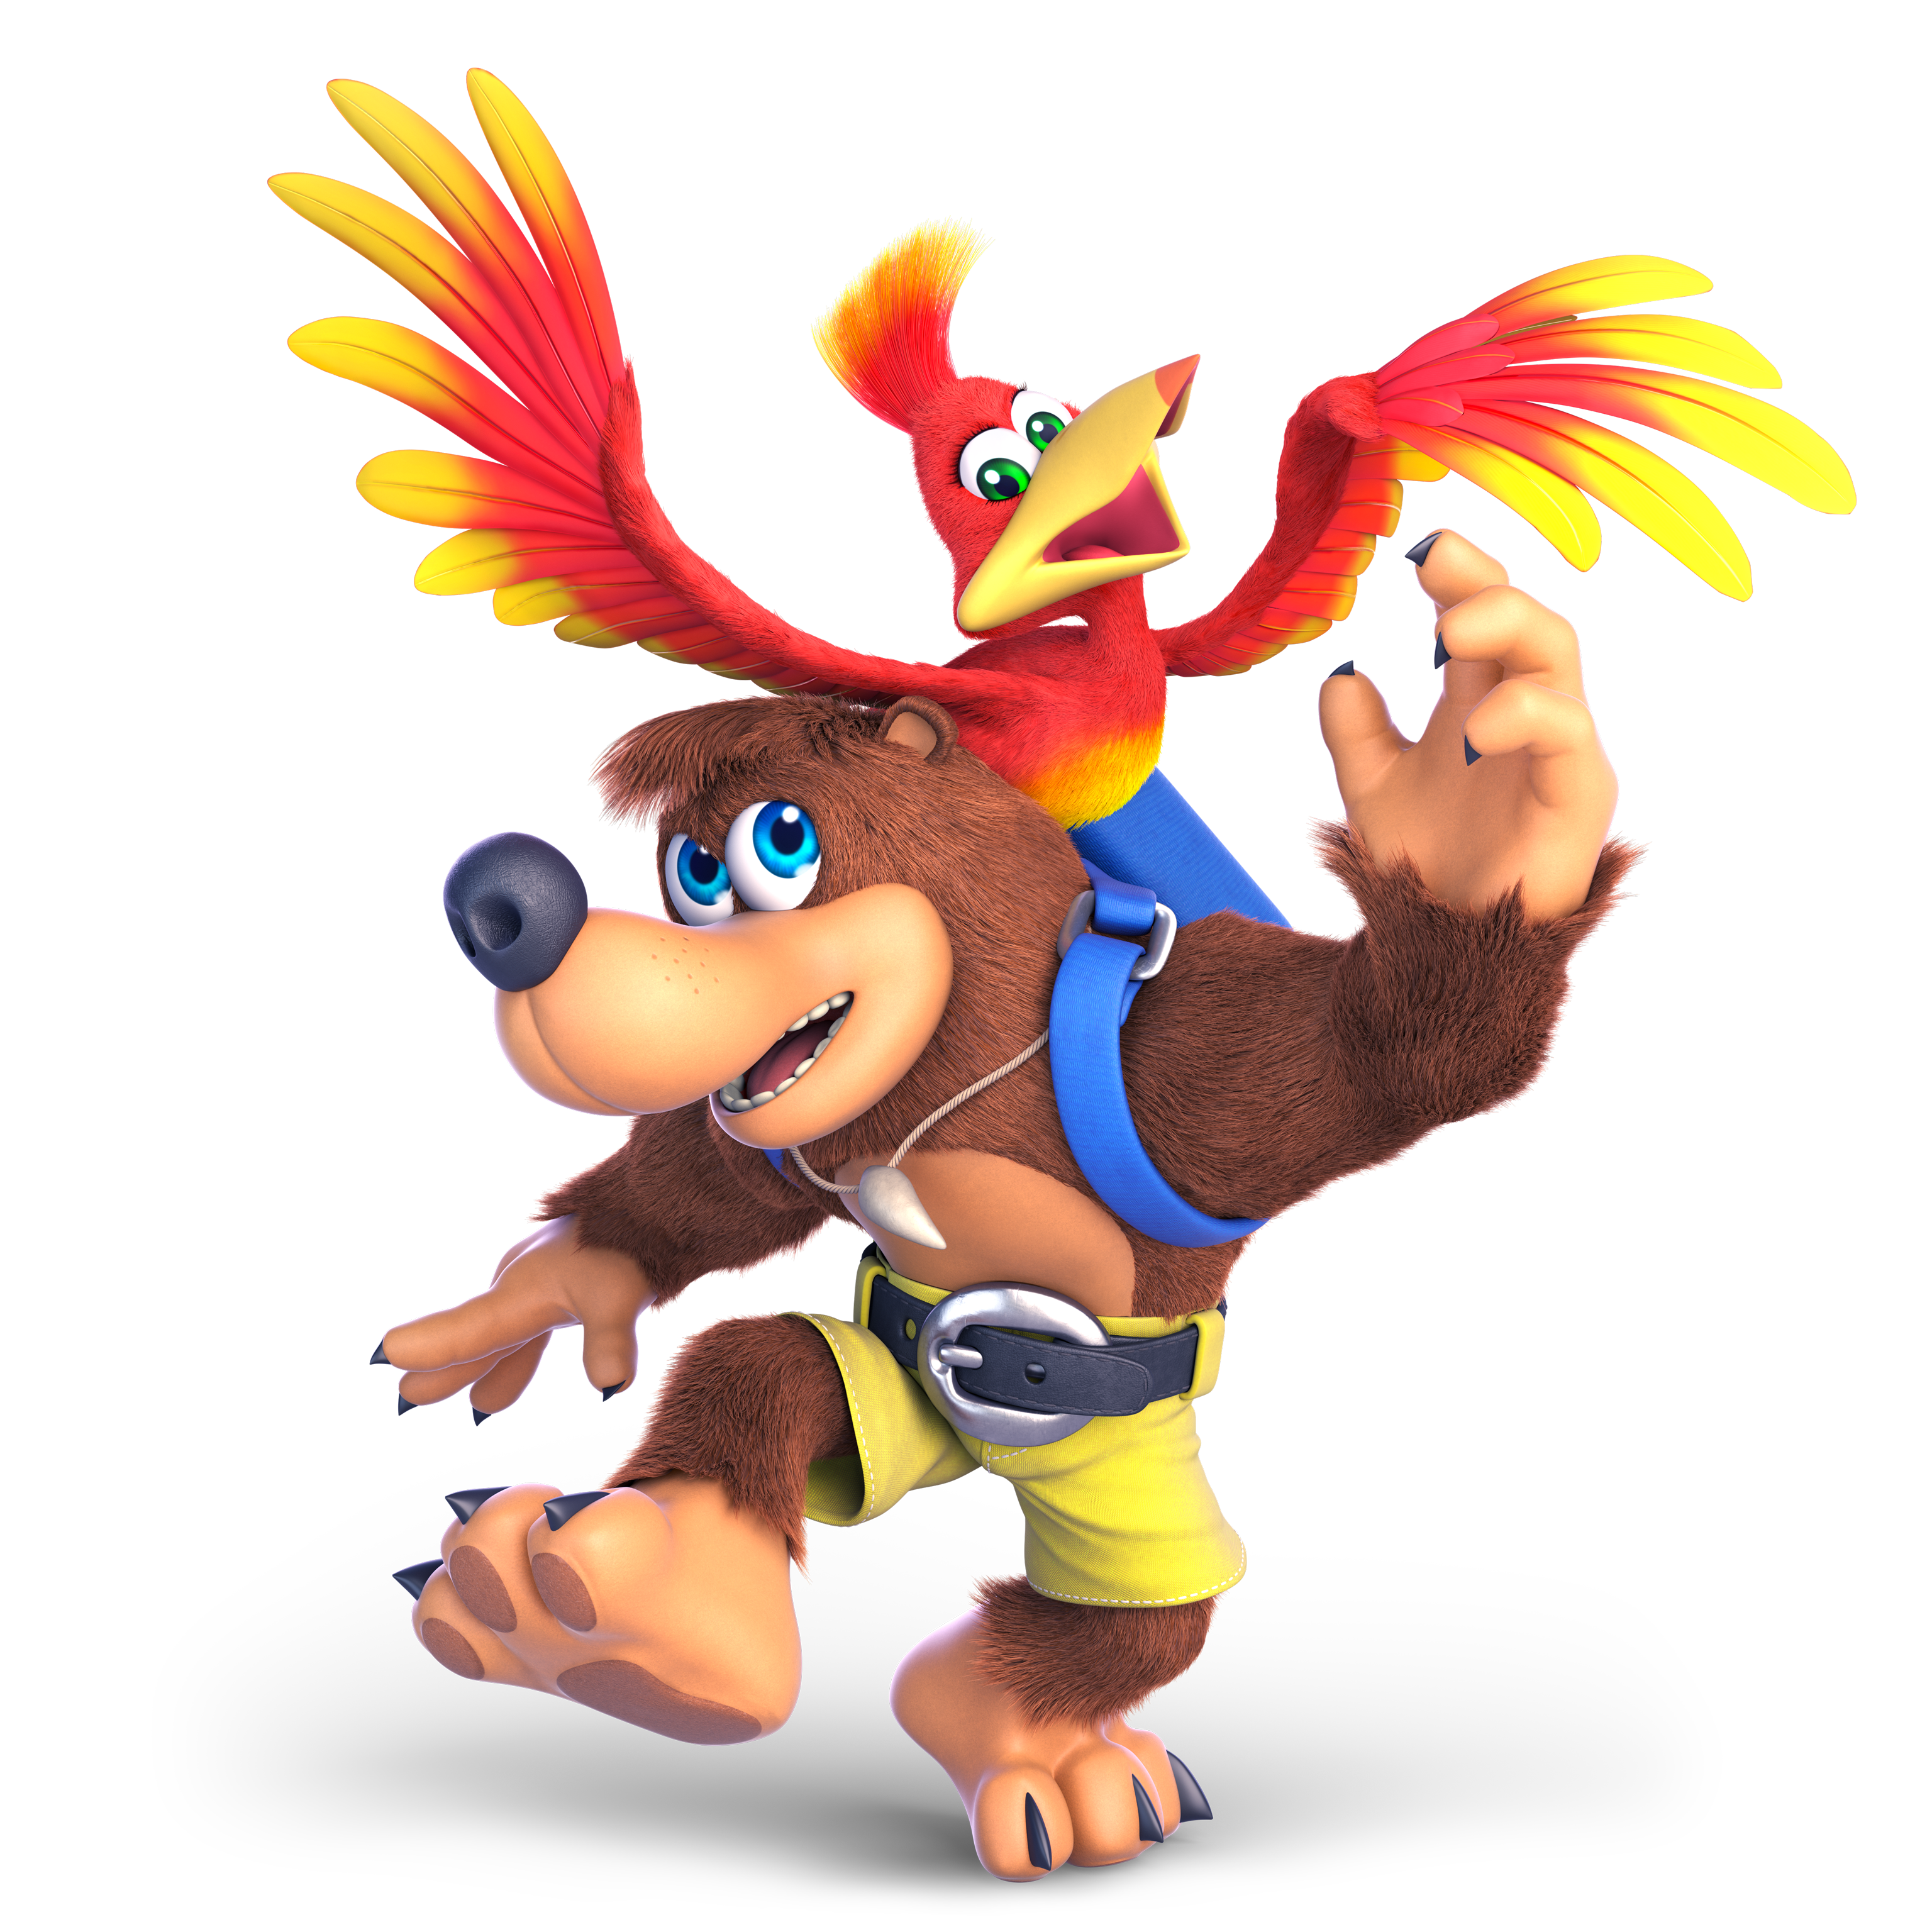 Banjo & Kazooie (Super Smash Bros. Ultimate)